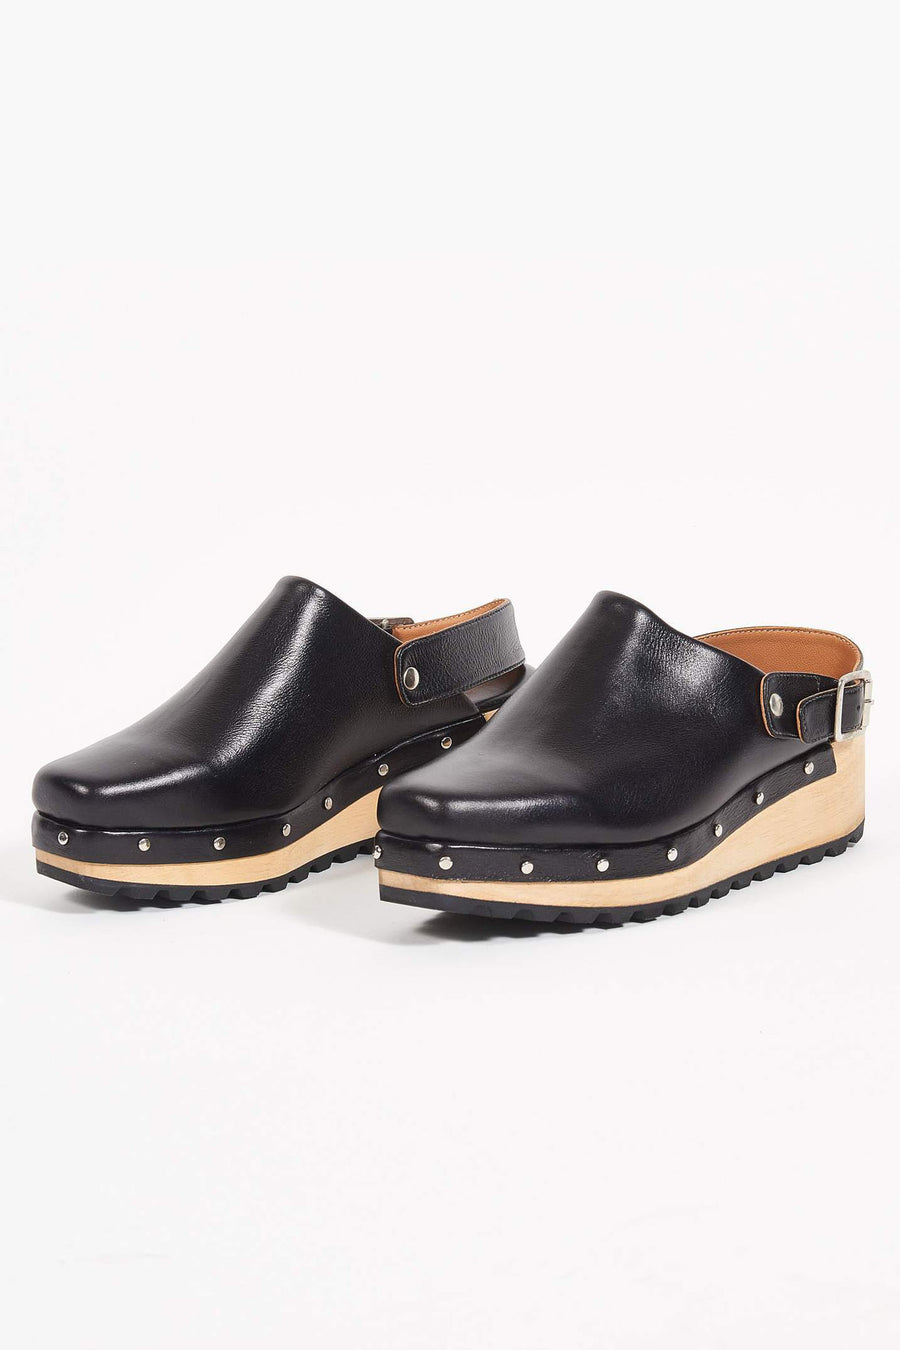 Beam Clog - Black